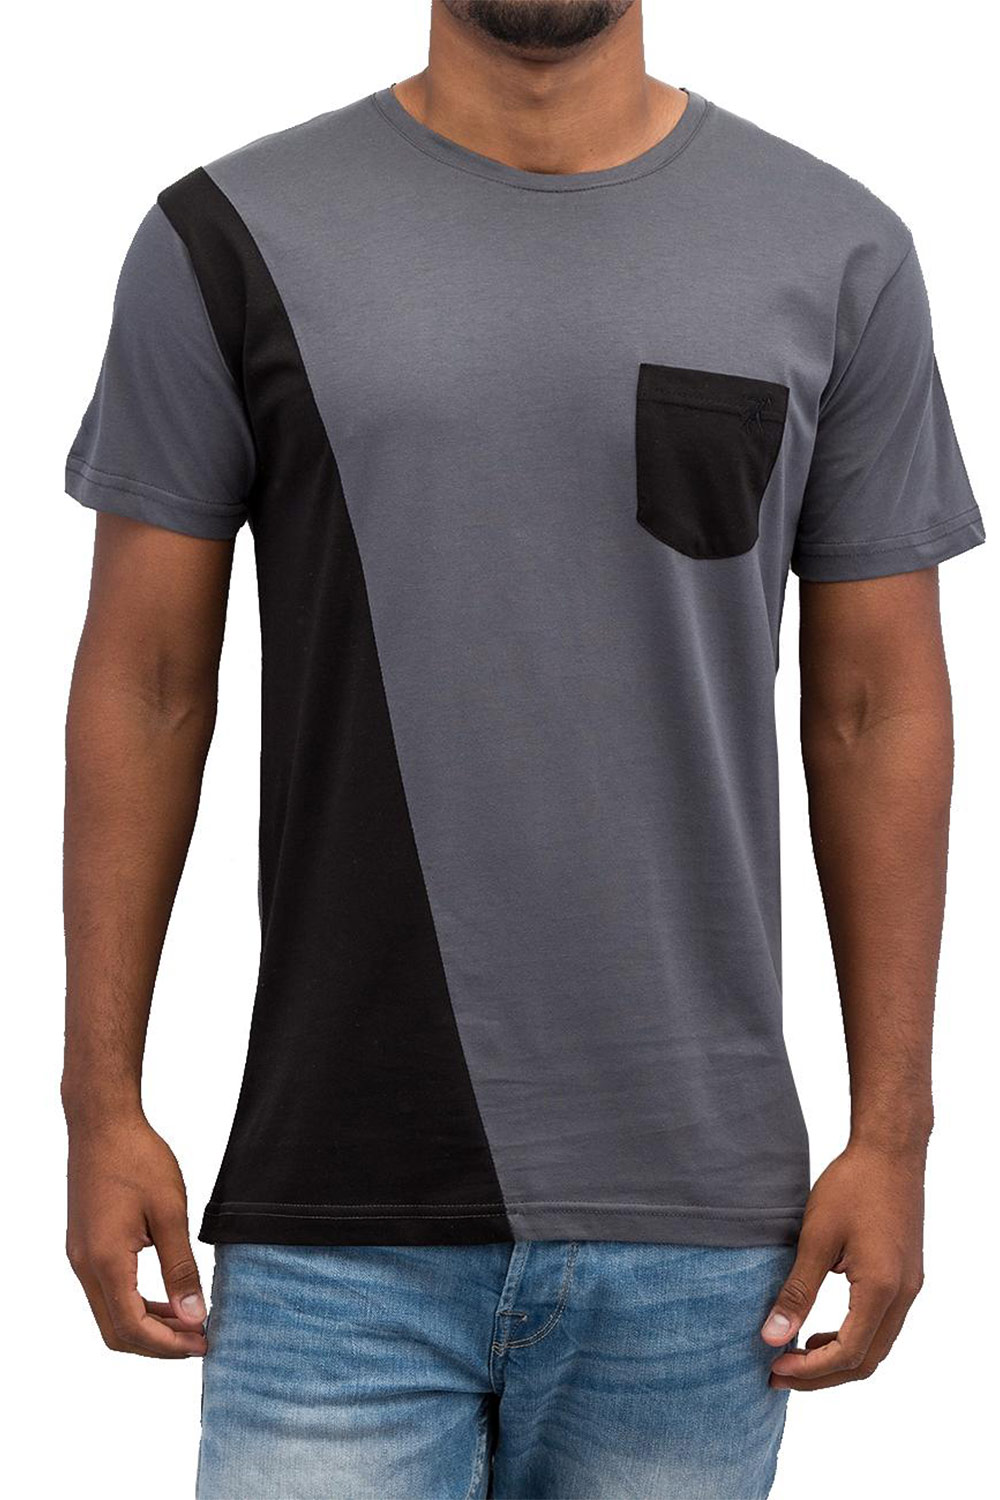 CAZZY CLANG Pocket II T-Shirt Grey/Black auf oboy.de